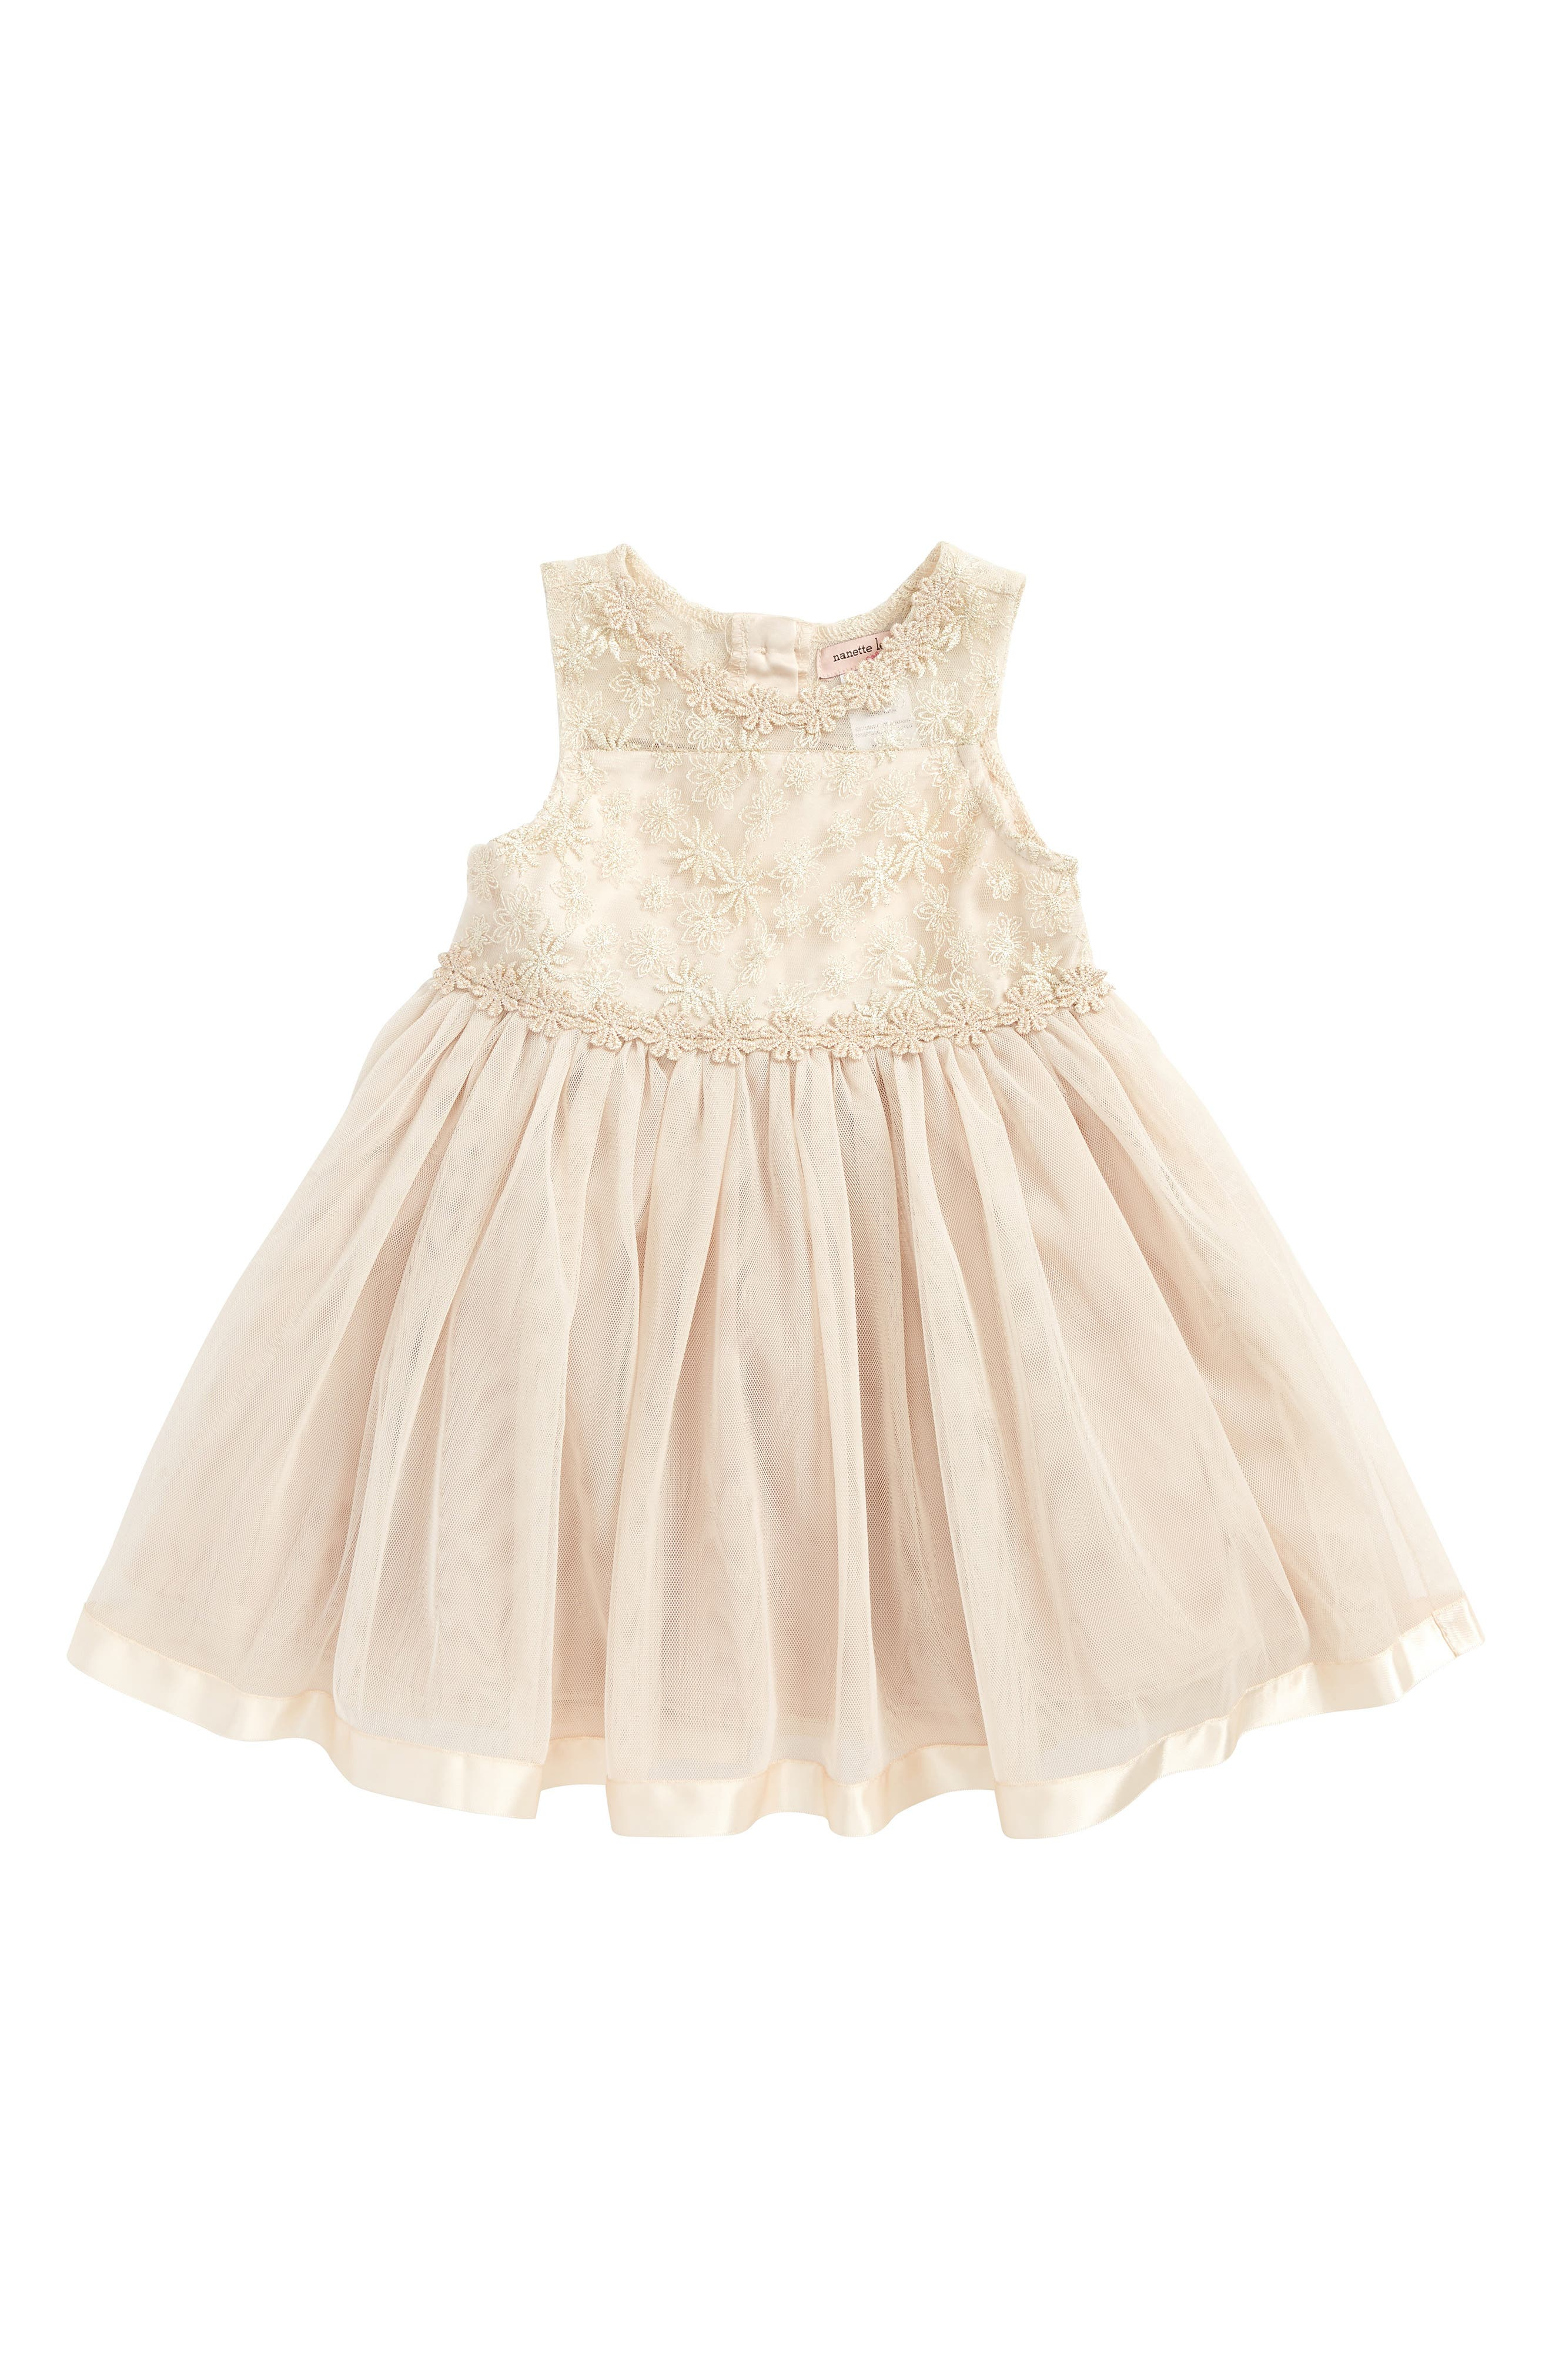 Alternate Image 1 Selected - Nanette Lepore Lace & Tulle Dress (Baby Girls)